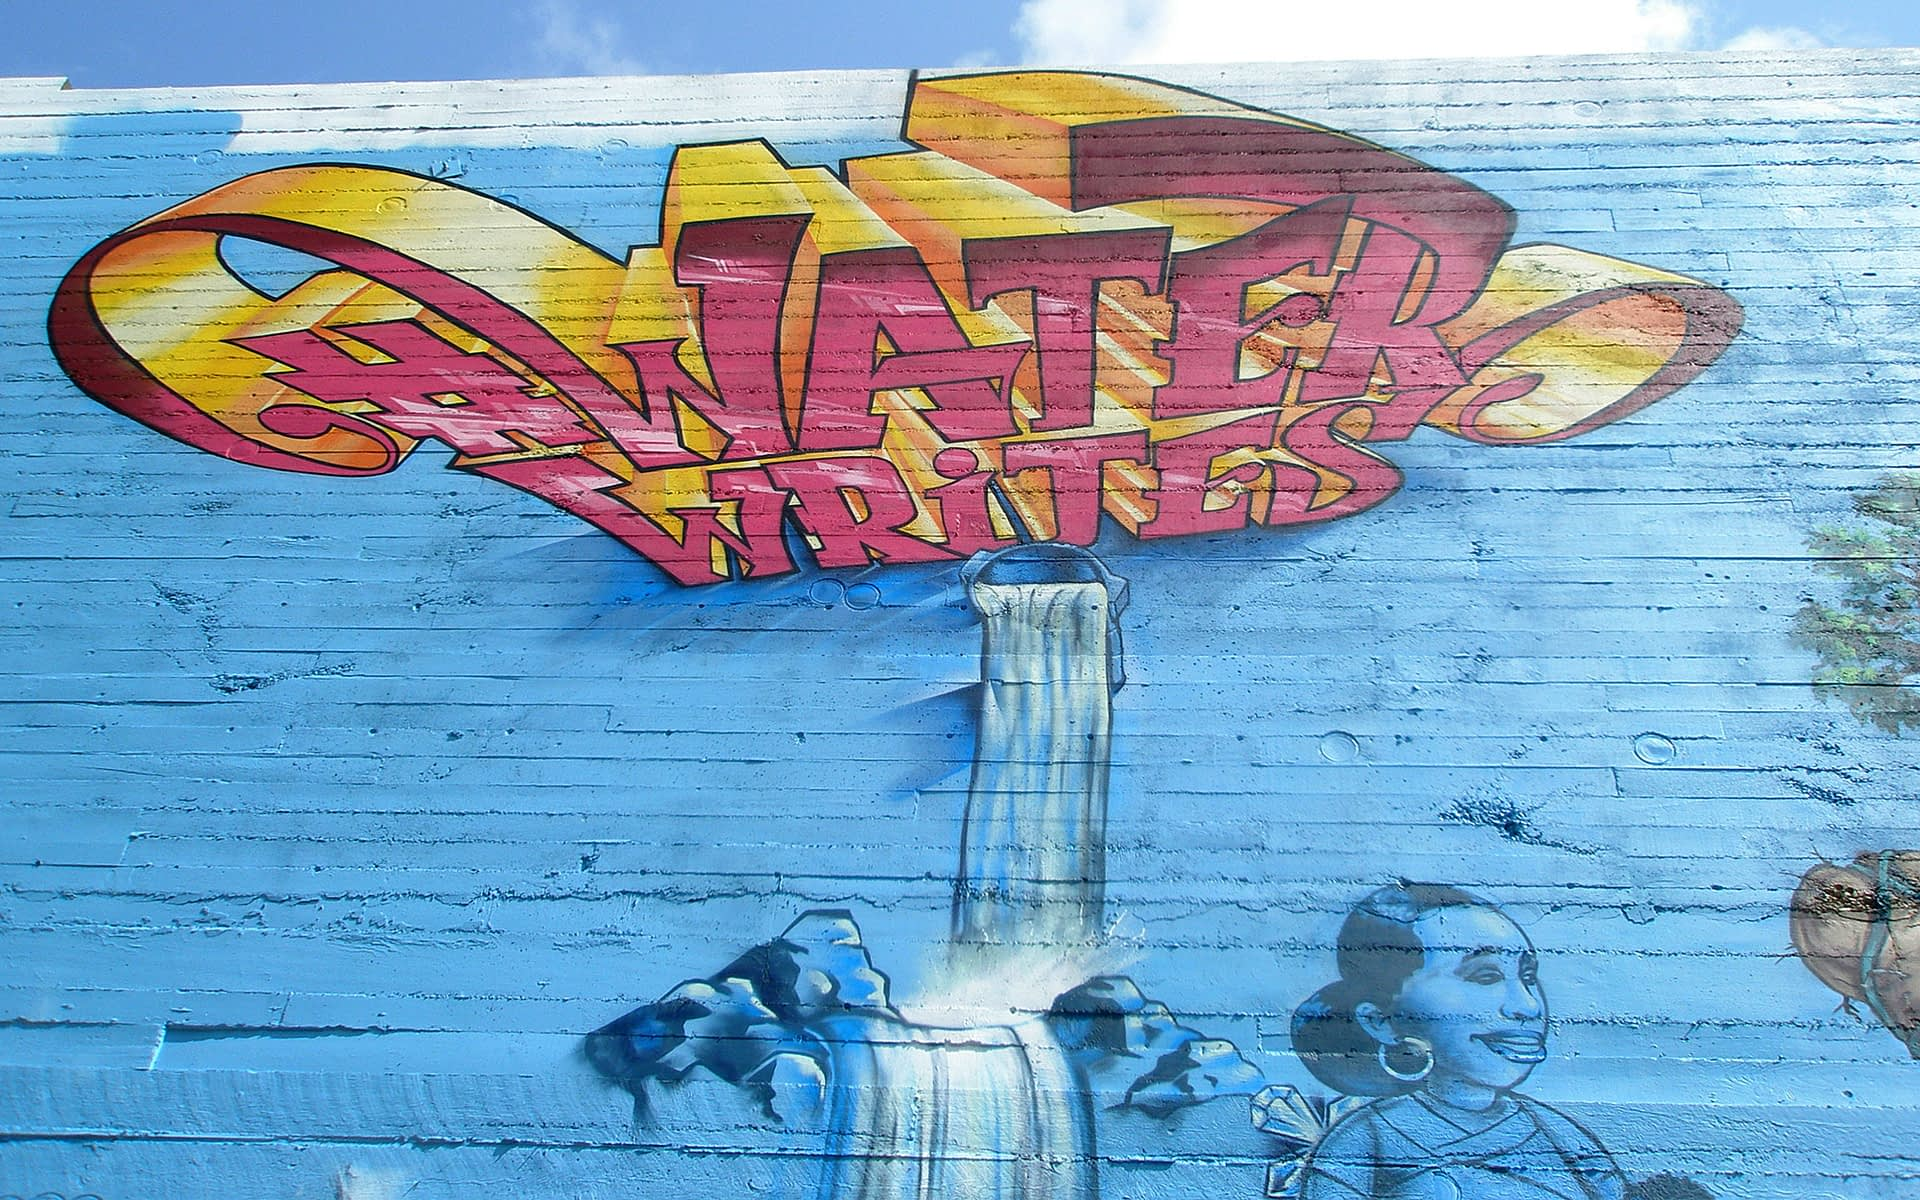 Water Writes Oakland California